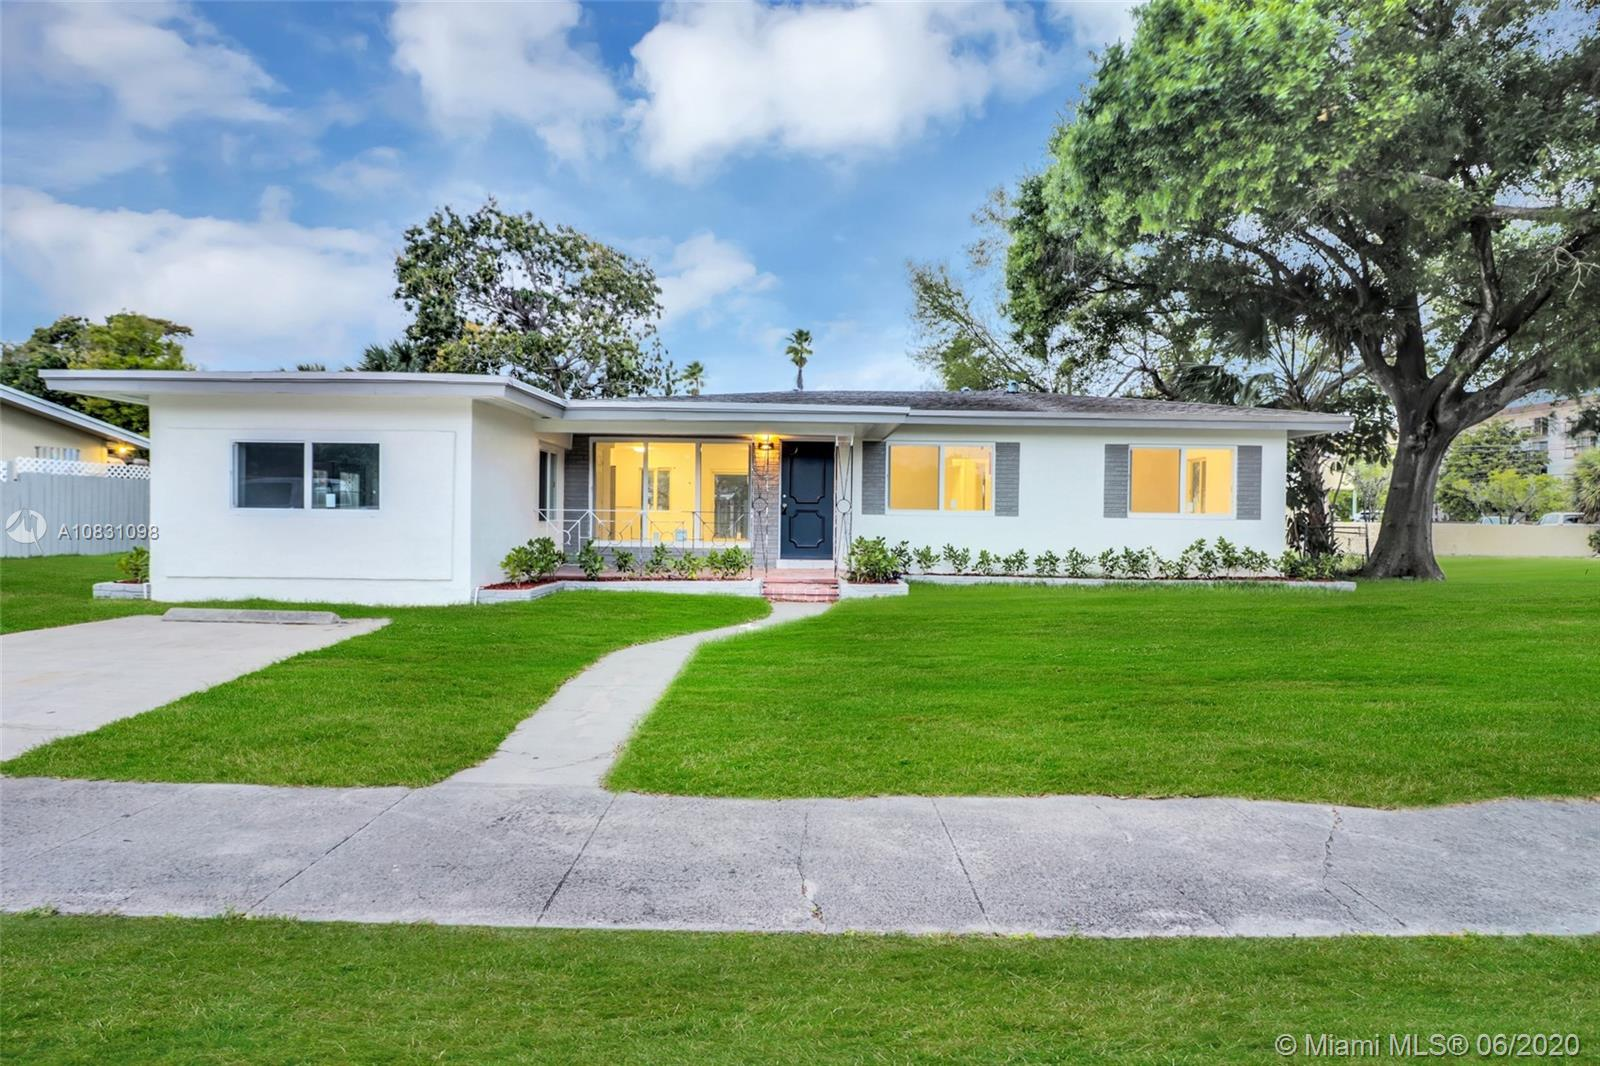 Welcome home to this 4 bedroom, 2 bath beauty in a charming neighborhood! Fully remodeled Wilton Manors home that features marble and wood ceramic floors, new solid wood kitchen cabinets with all new stainless steel appliances, new water heater, and new washer & dryer. All new drywall inside plus impact windows throughout. This home features an open and spacious floor plan with tons of natural light. Cozy backyard perfect for entertaining with all new grass , landscaping, and sprinkler system. Centrally located near schools, shopping, dinning, entertainment, and just a short drive to the beach. Easy to show. Call today!